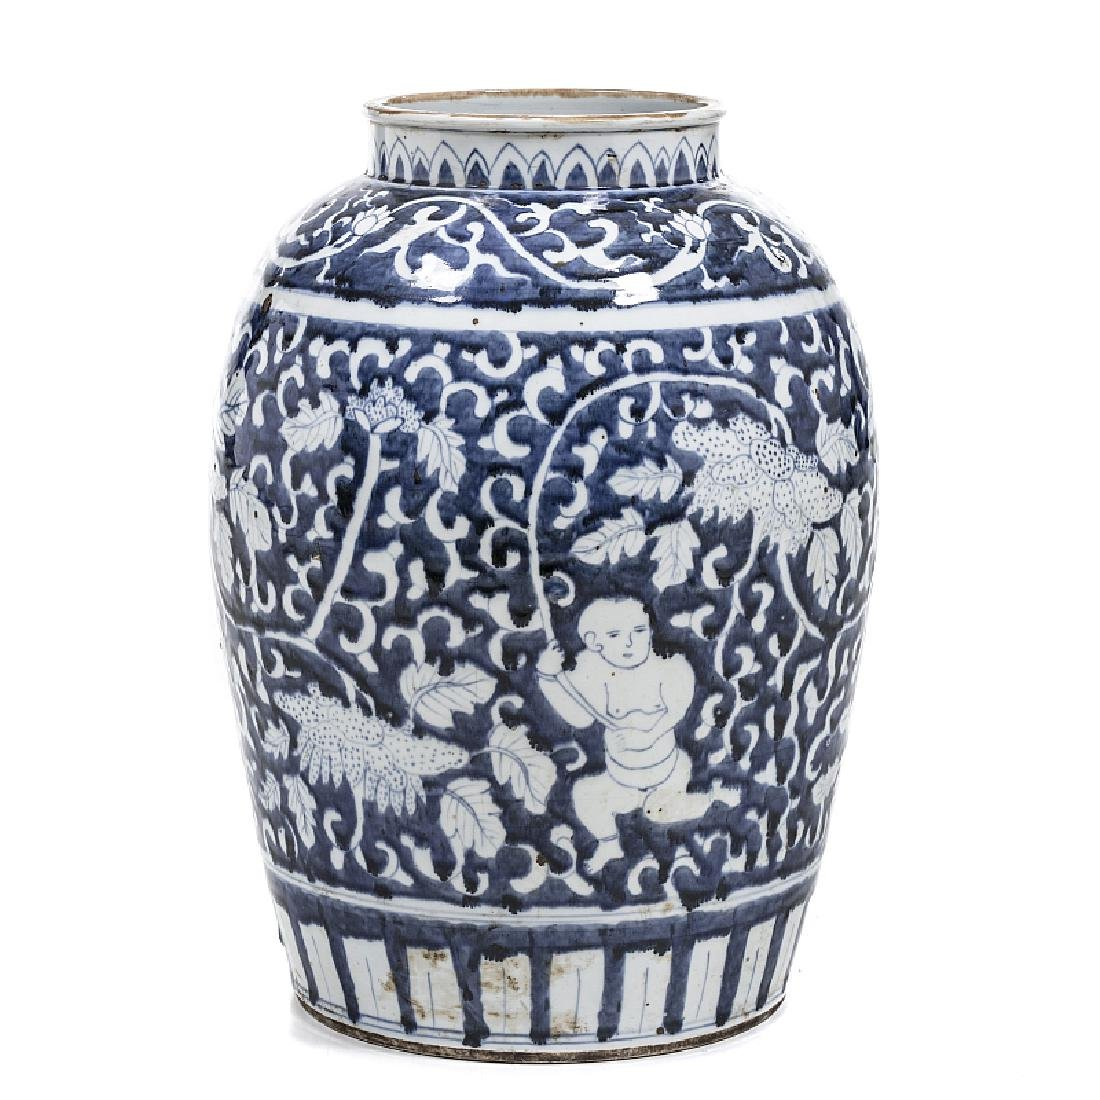 Pot 'boys' in Chinese porcelain